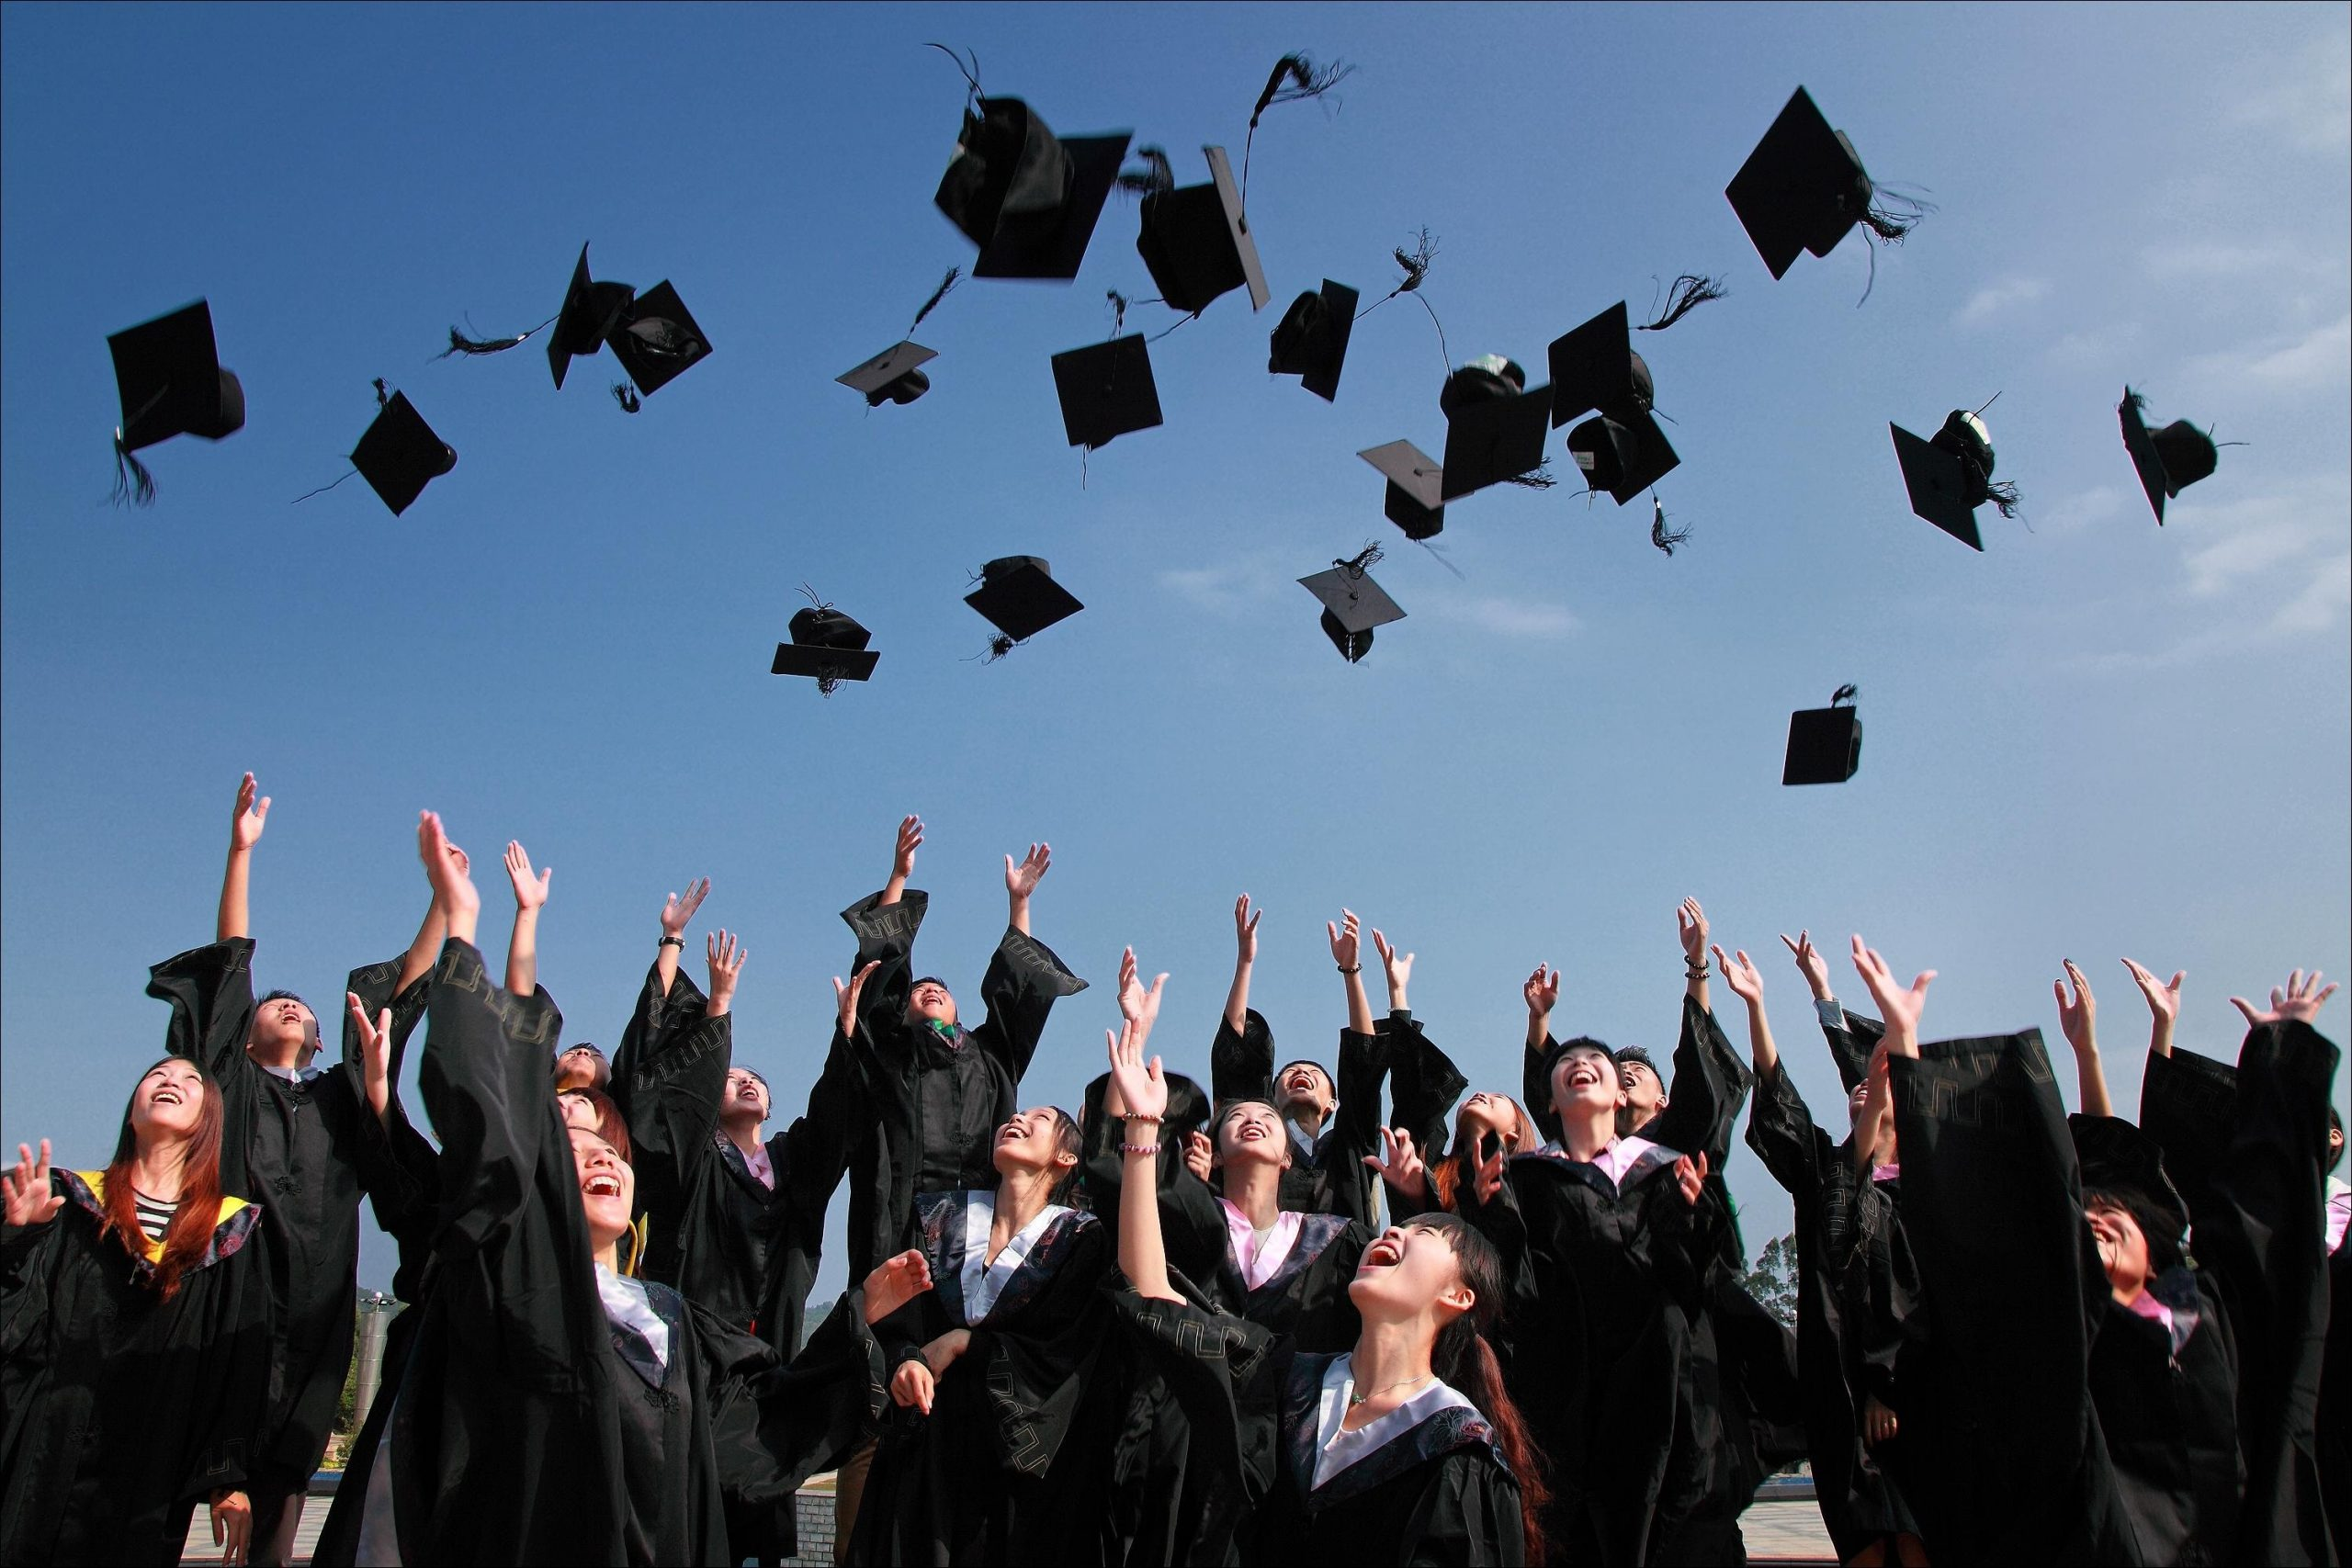 University deferrals hit 16,800: Highest level in nearly 10 years